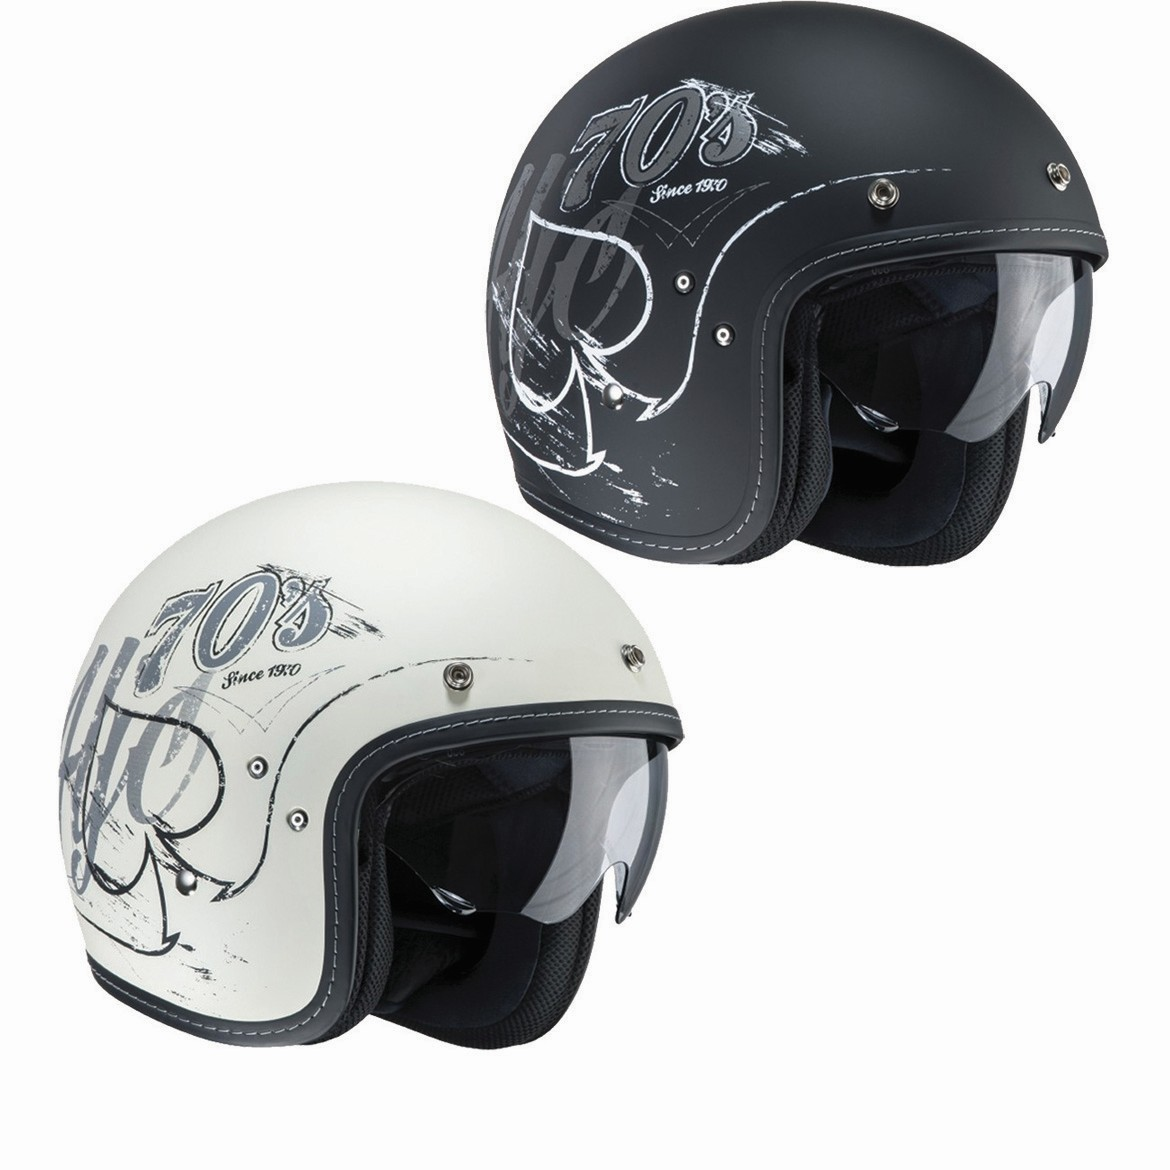 hjc fg 70s rockers open face motorcycle helmet open face helmets. Black Bedroom Furniture Sets. Home Design Ideas